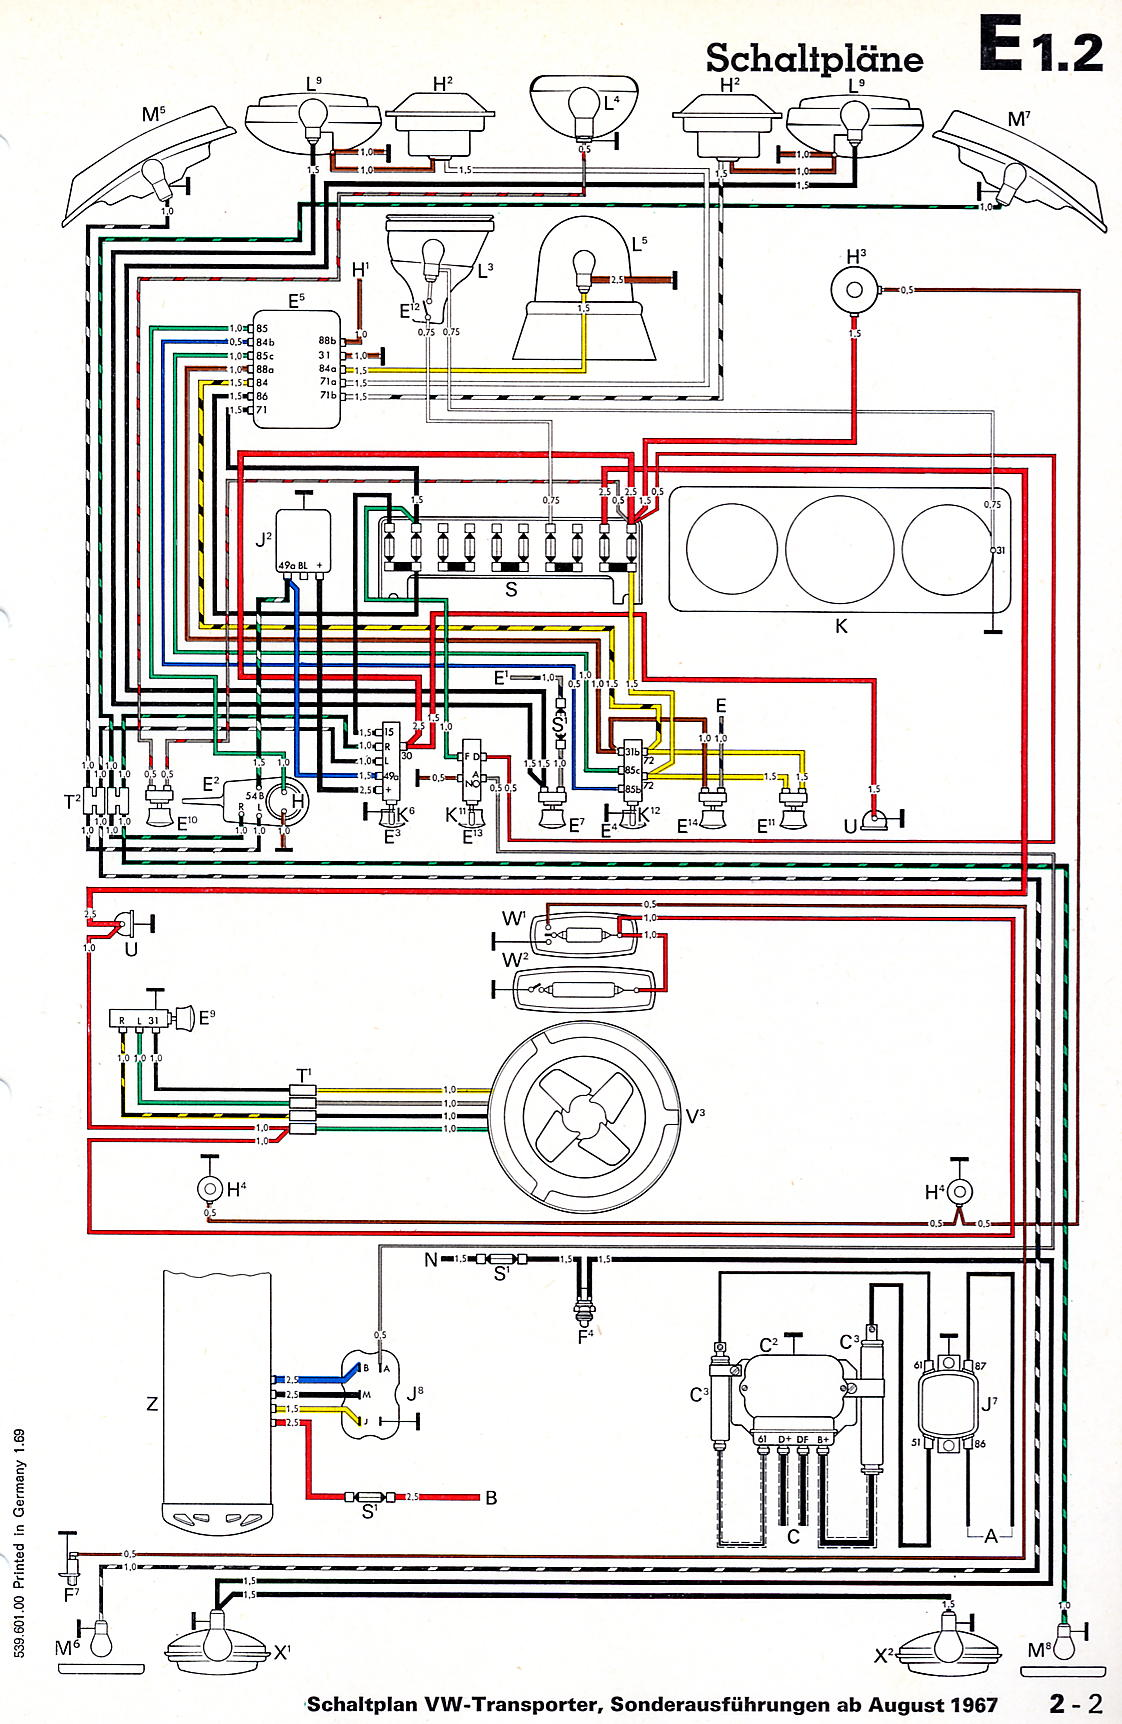 engine vacuum diagram 1973 vw bus 1973 vw bus radio wiring vintagebus com vw bus and other wiring diagrams